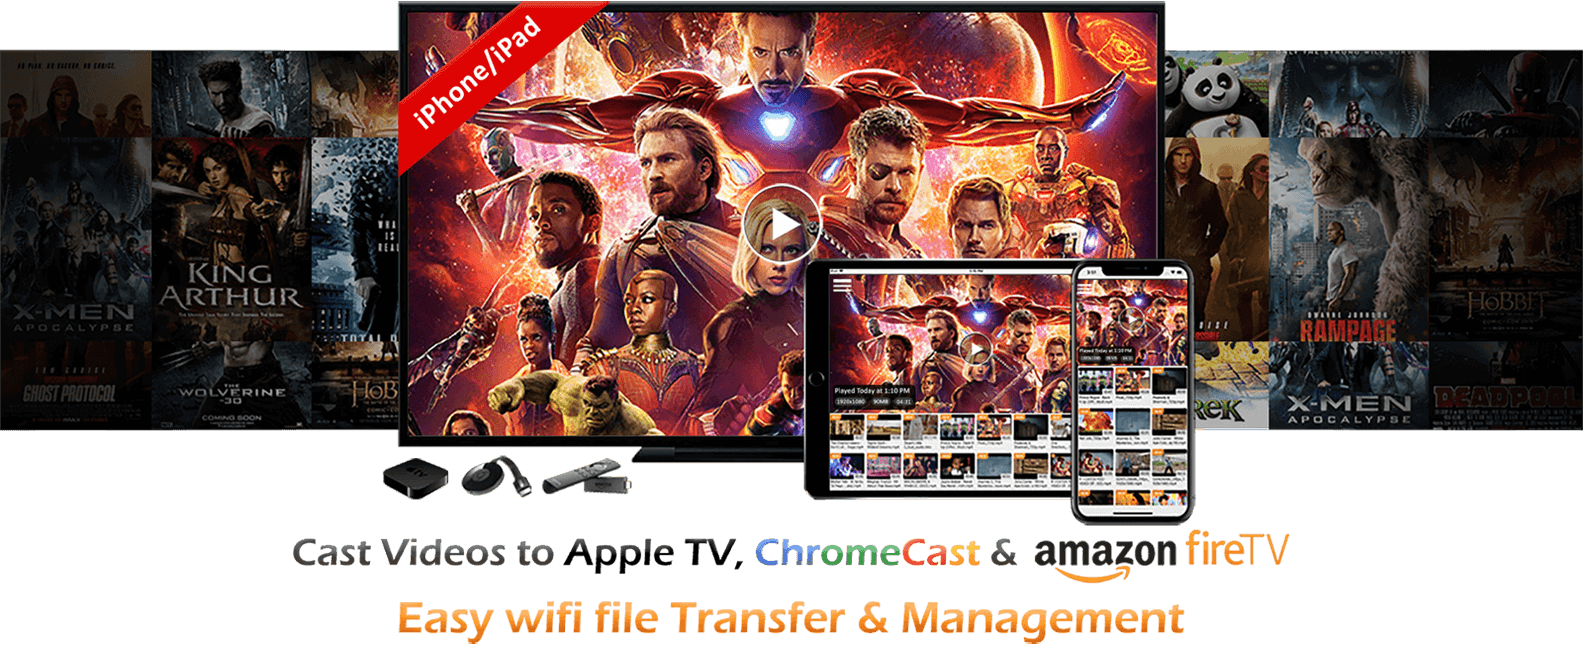 CnX Video Player | Breath Taking Visual Experience 4K Media